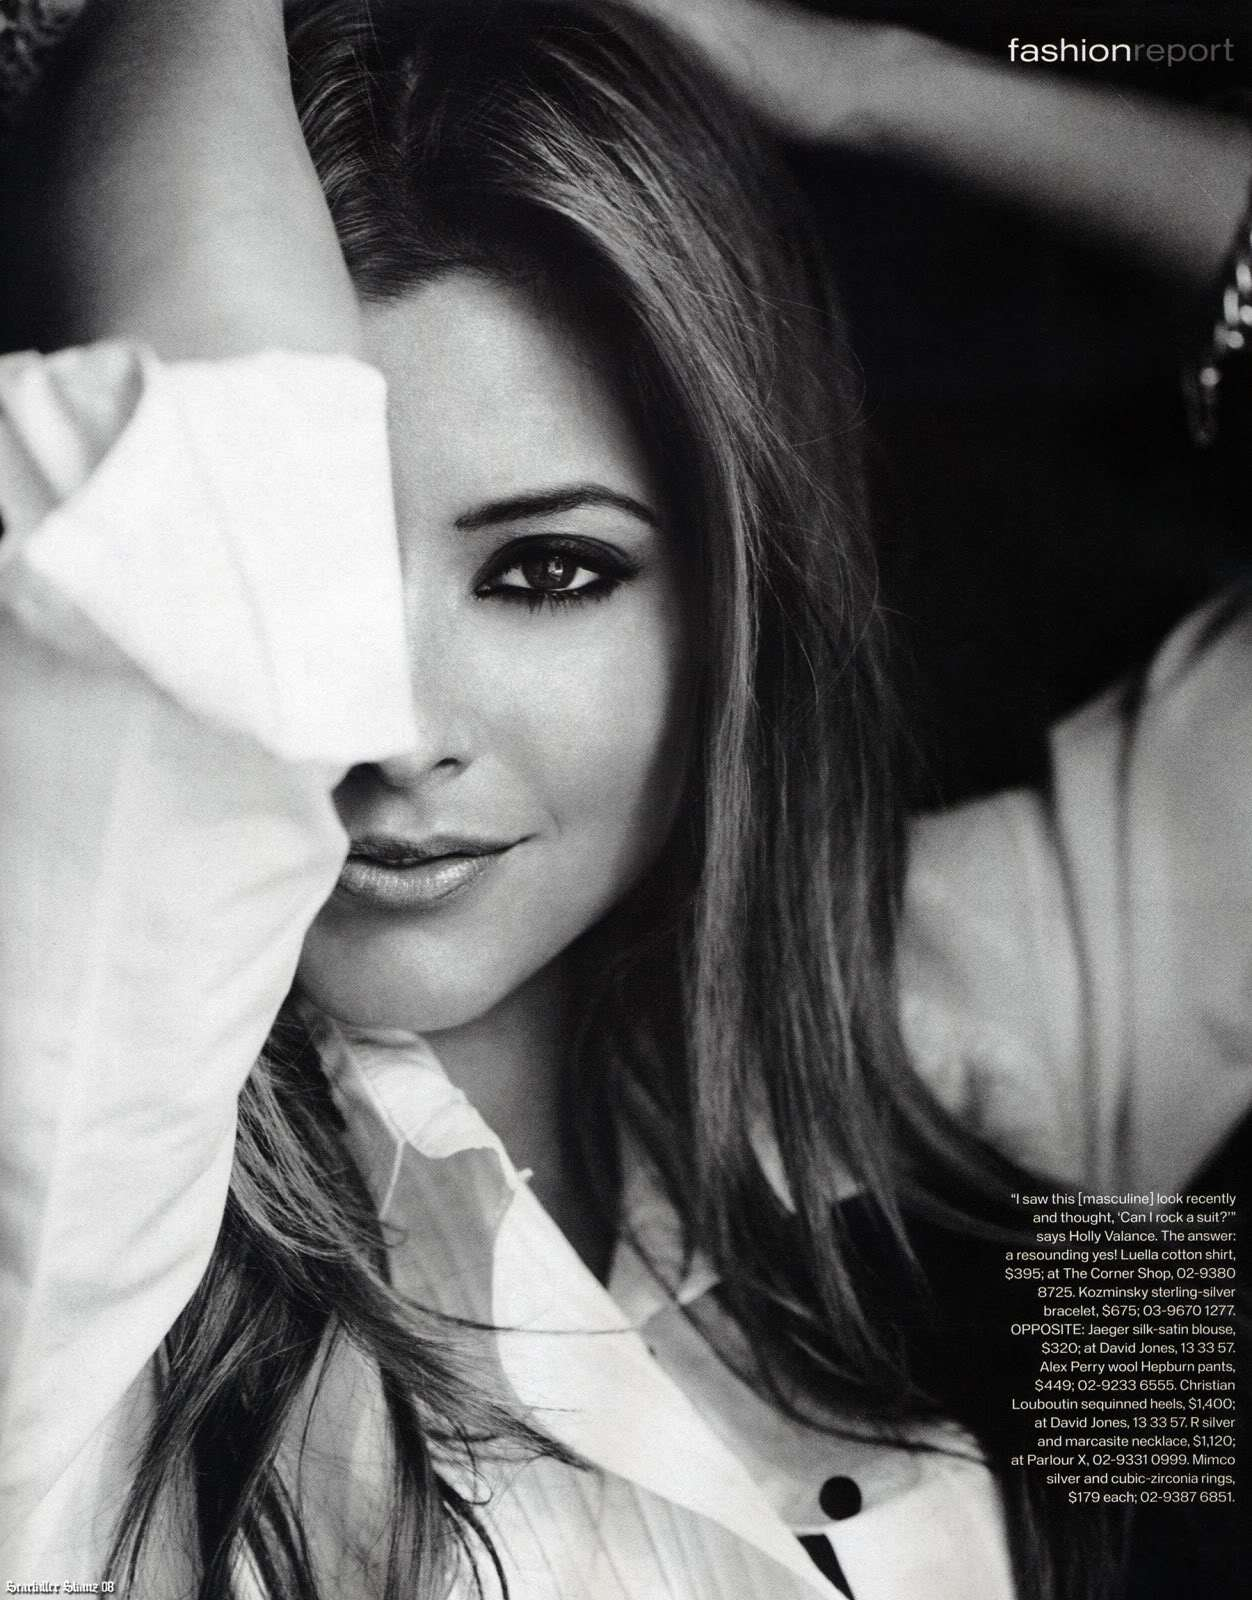 Holy Valance - Instyle Magazine Scans - Sexy Actress Pictures   Hot Actress Pictures - ActressSnaps.com